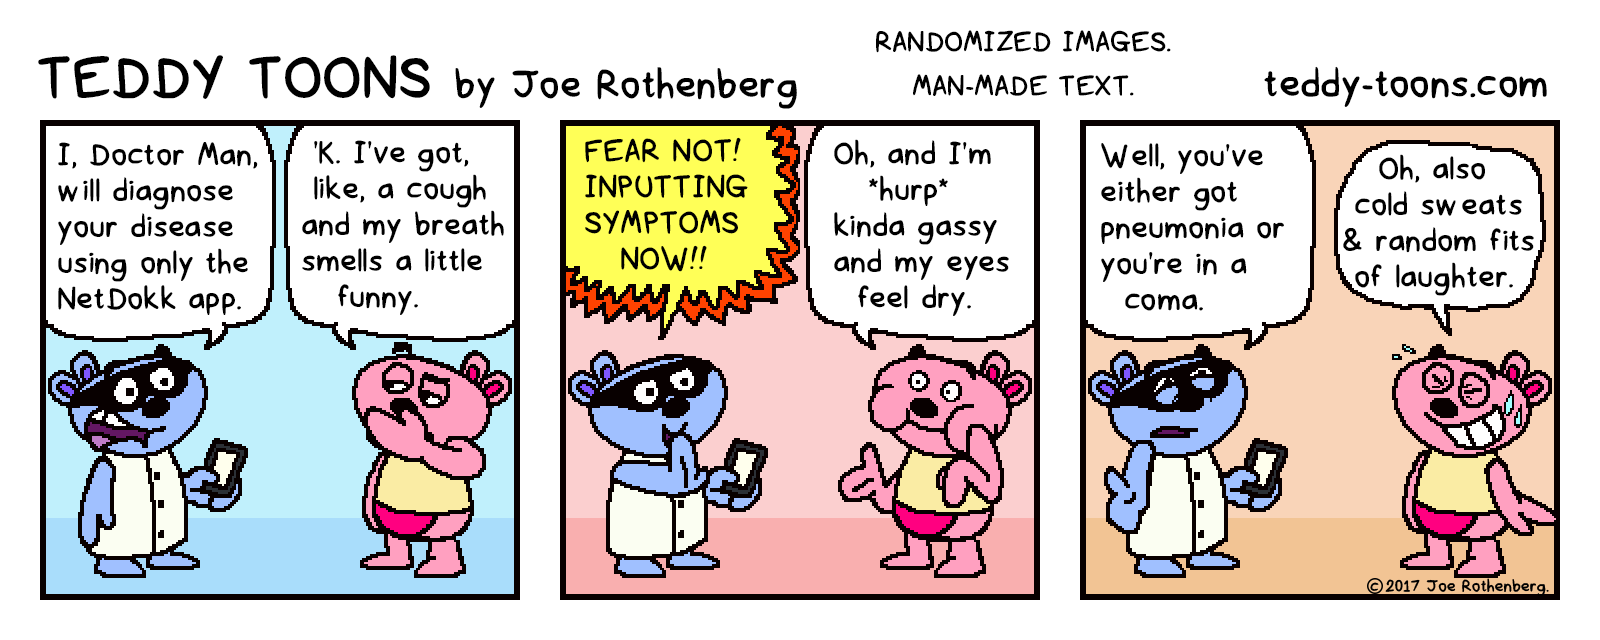 03-17-17.png